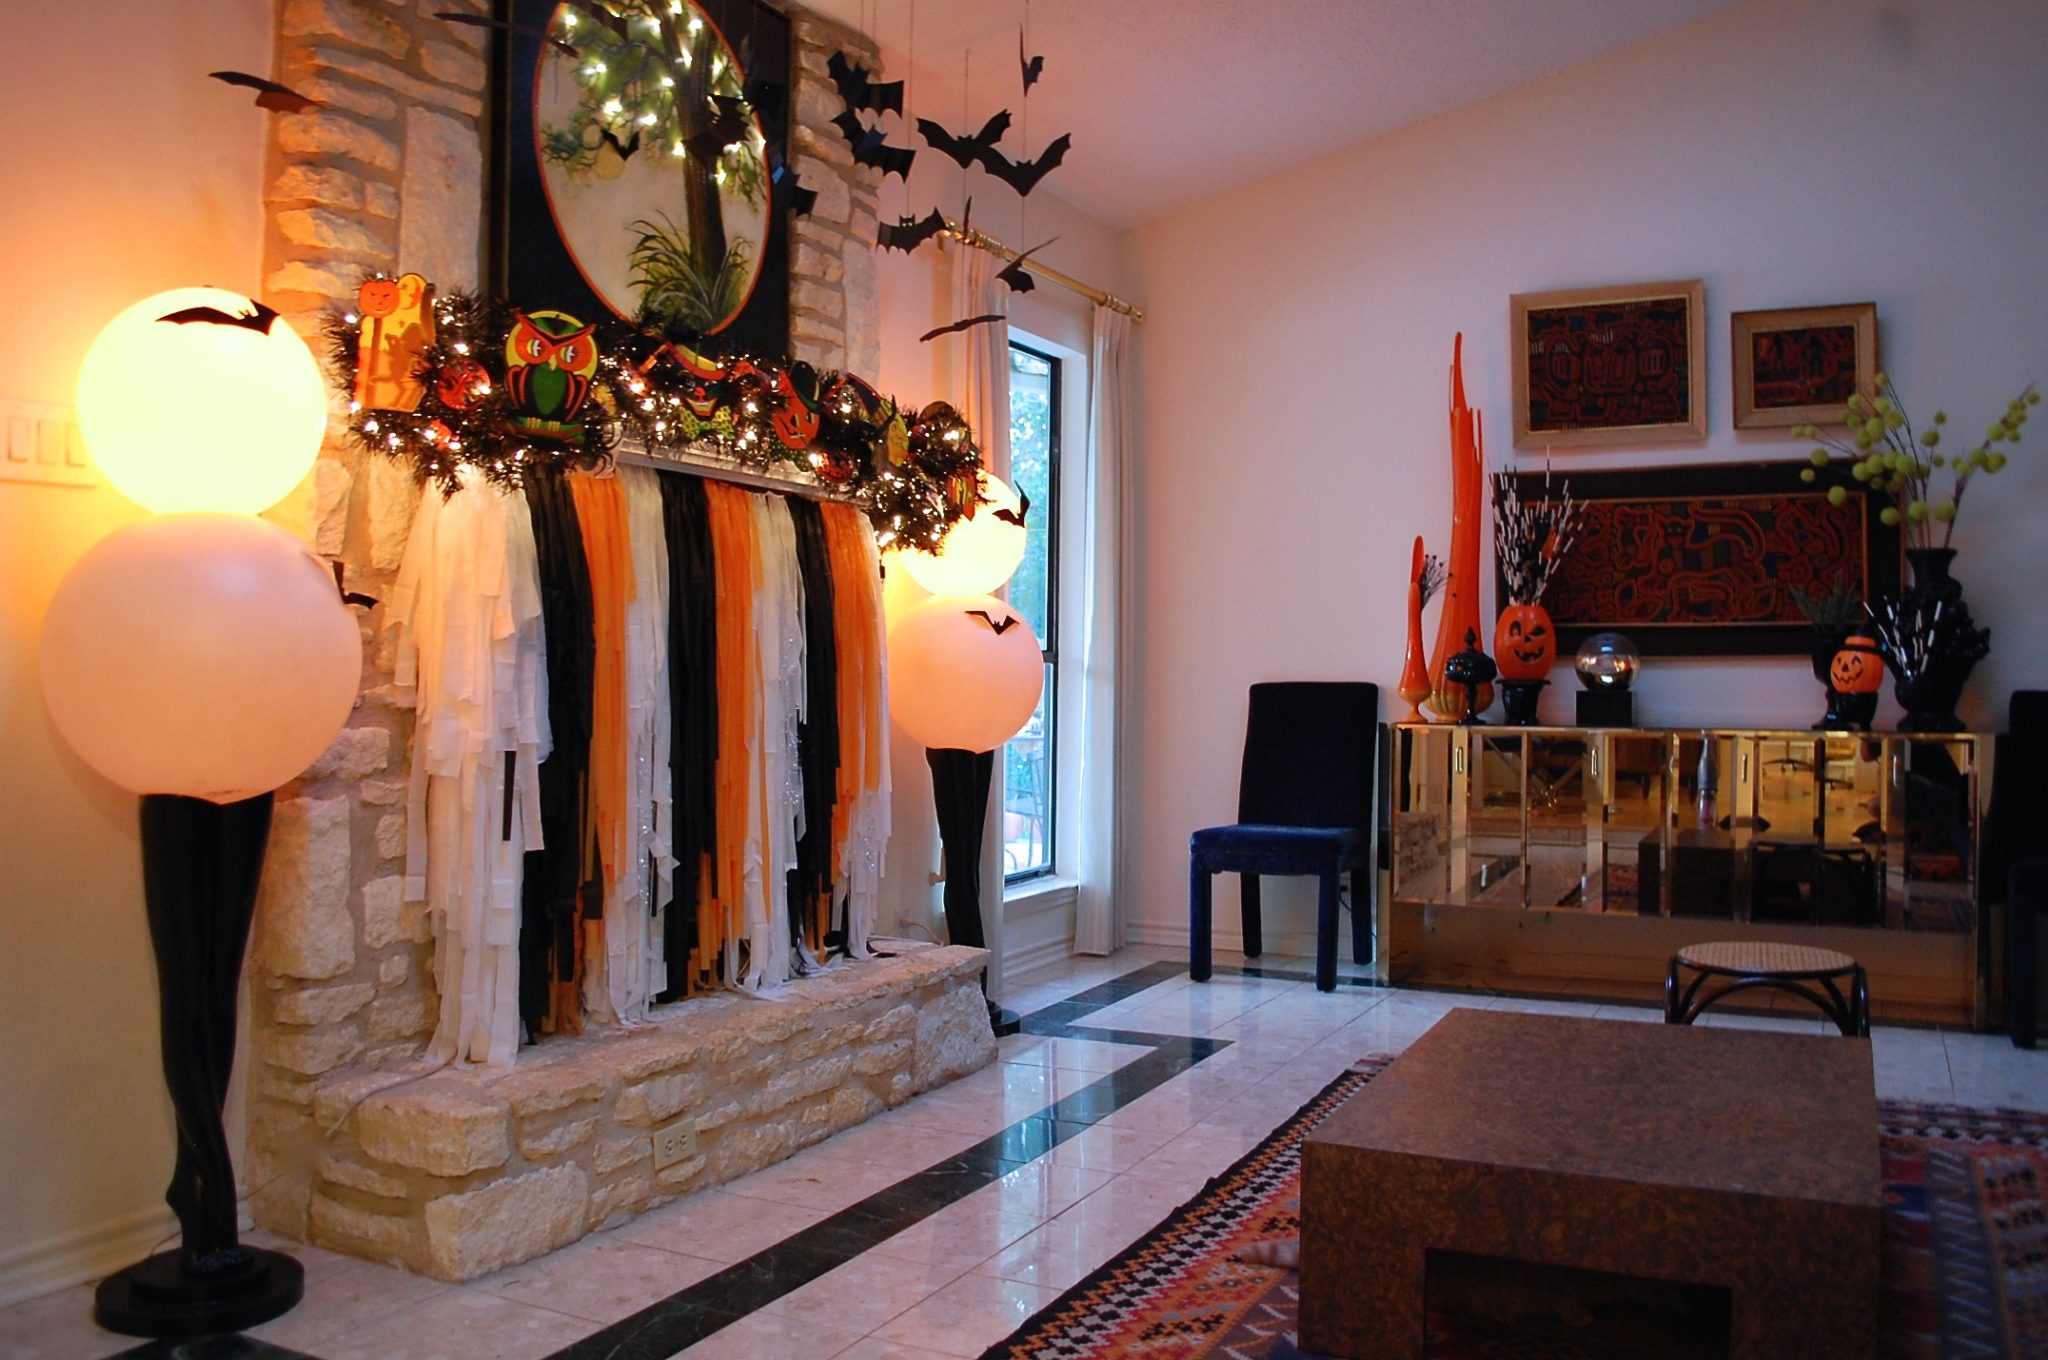 How to decorate a Halloween fireplace and mantel.